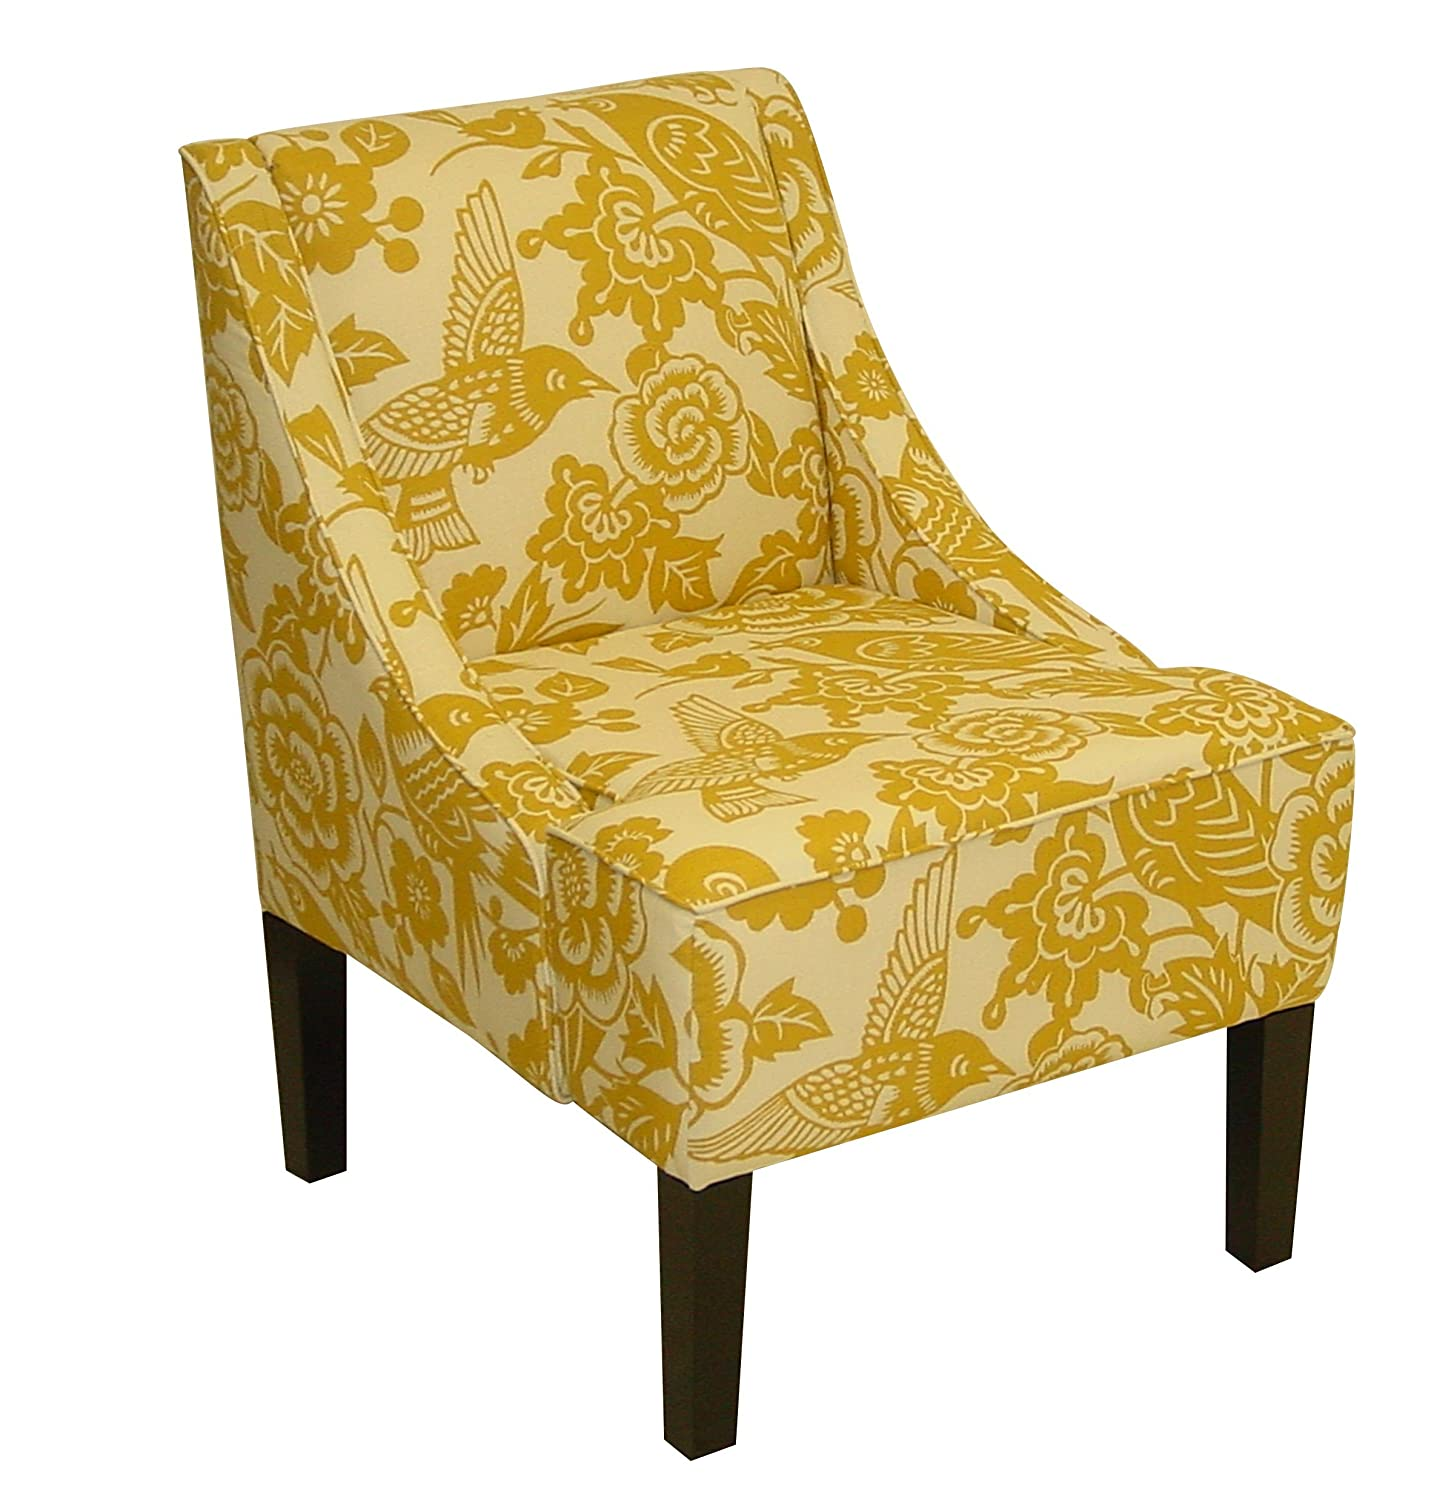 Amazon Skyline Furniture Swoop Arm Chair in Canary Maize